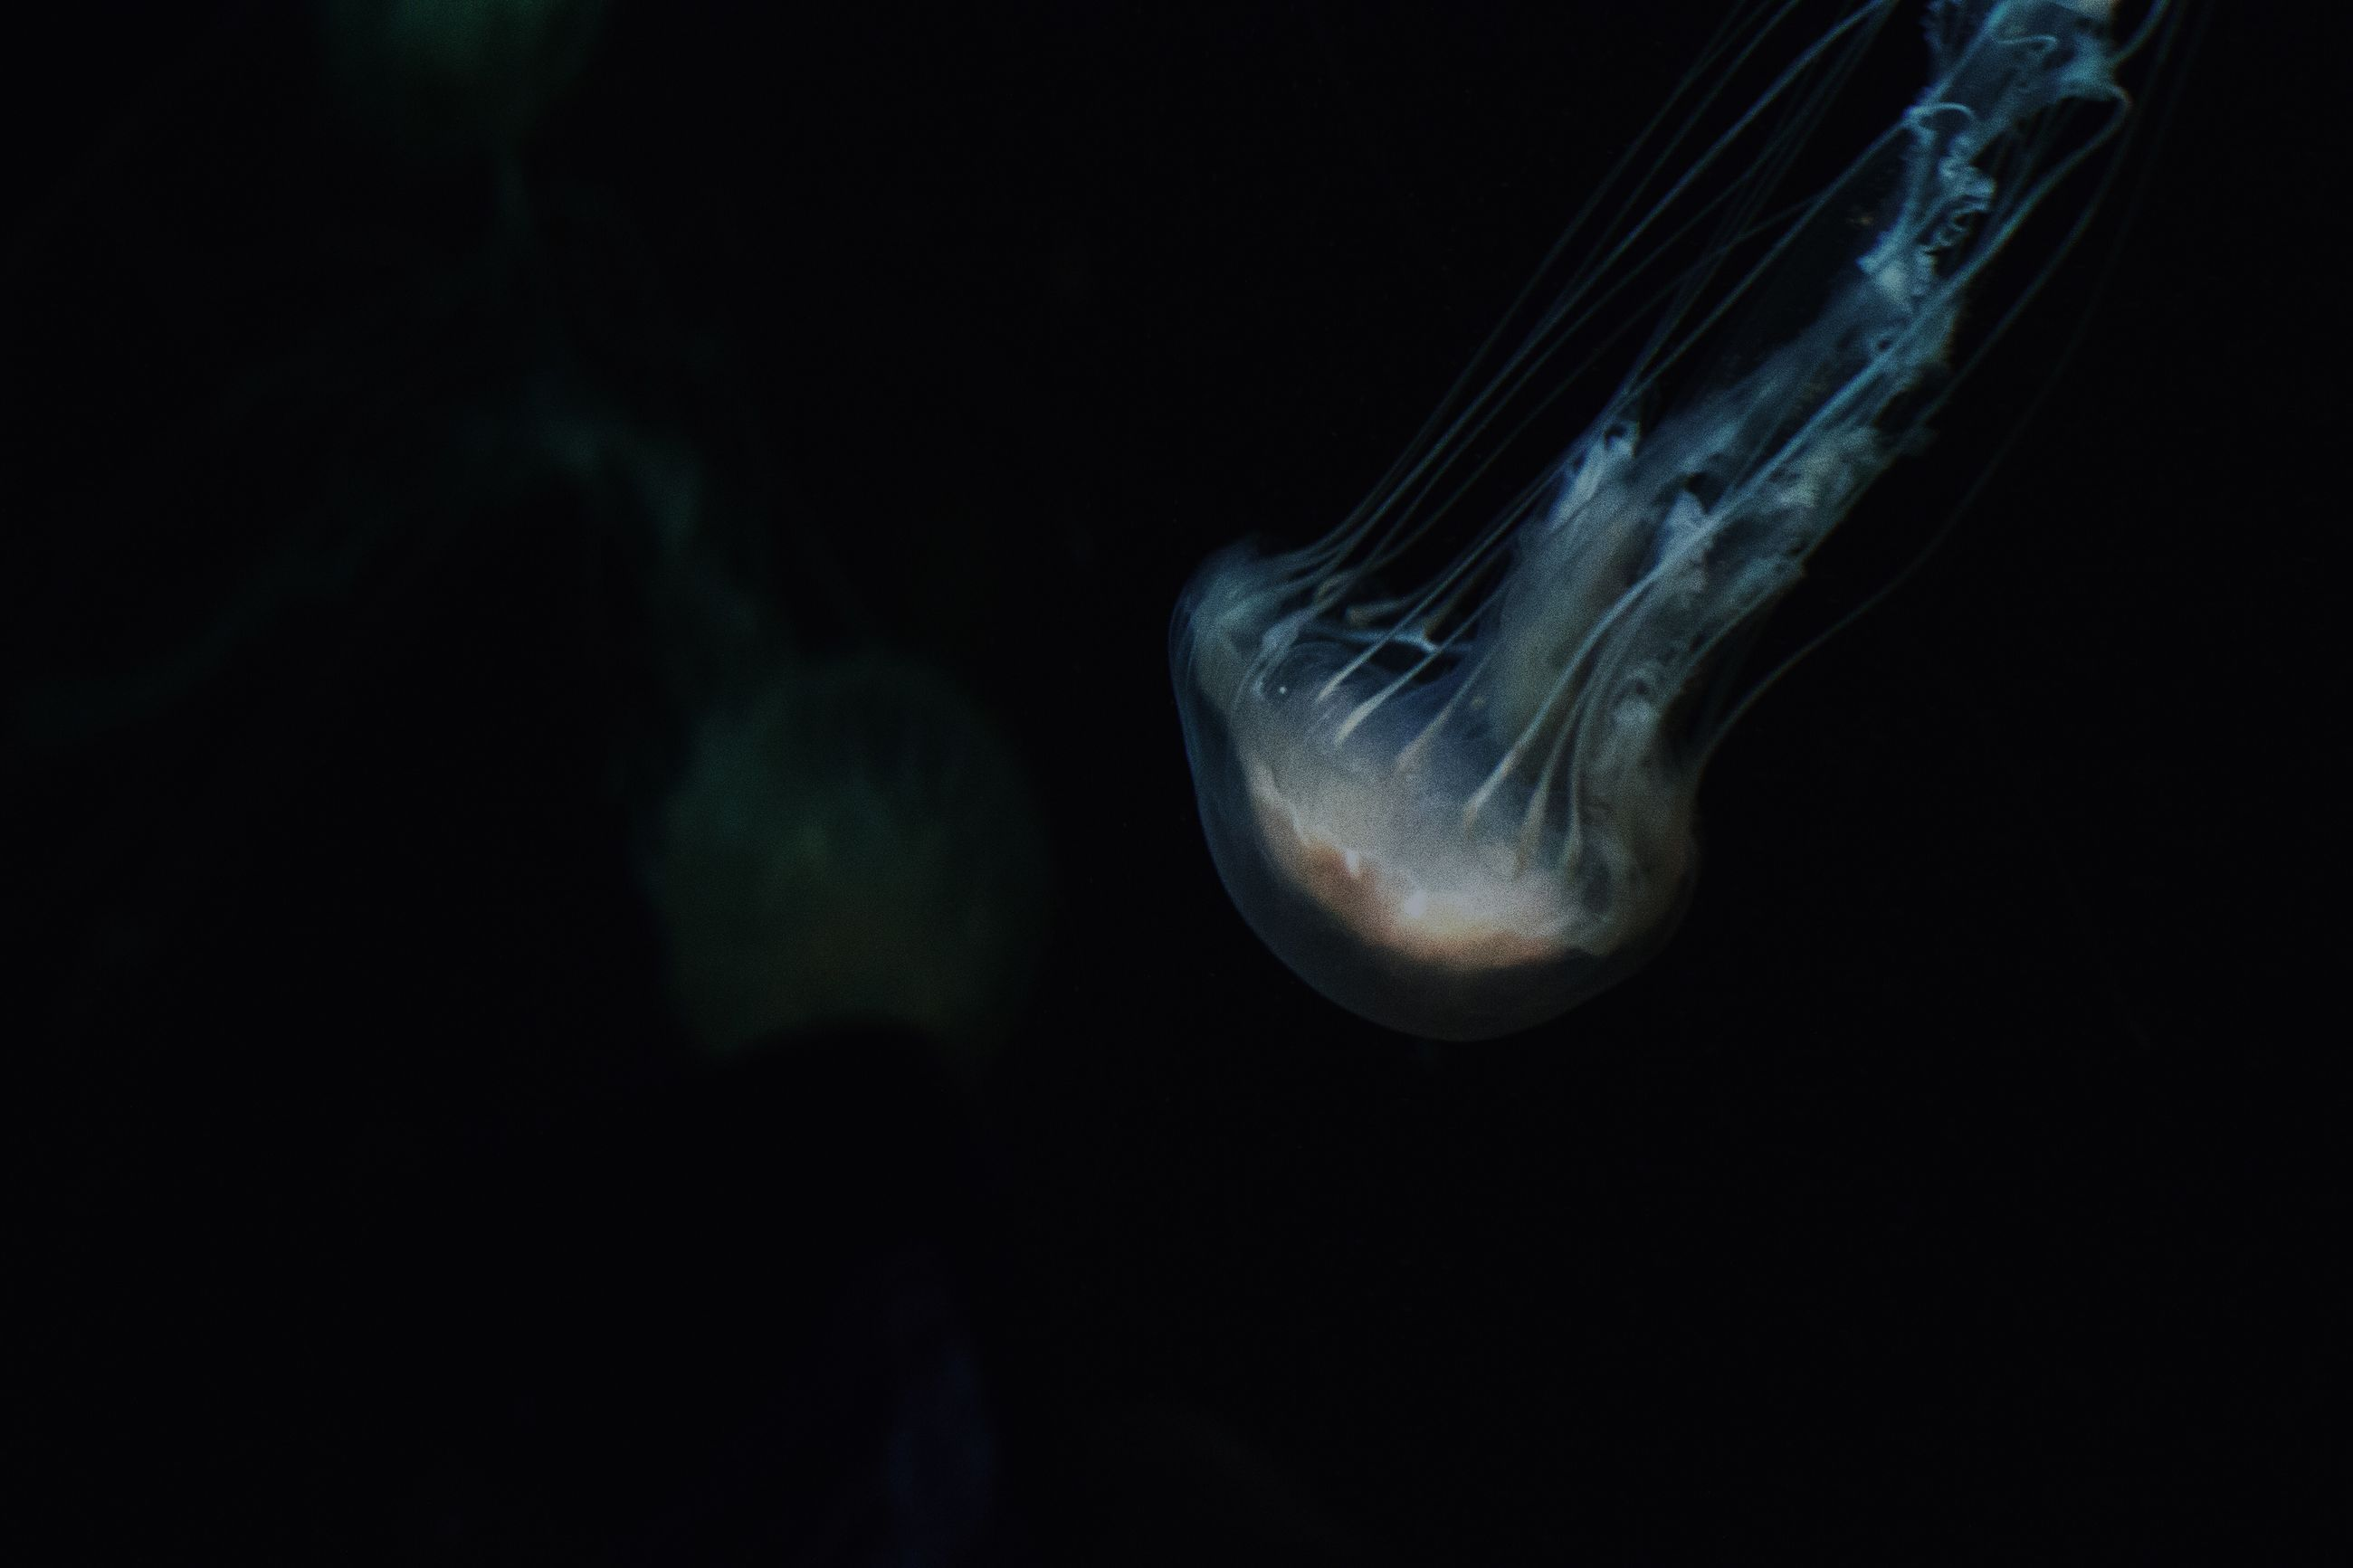 black background, studio shot, night, close-up, copy space, dark, sea life, underwater, animal themes, jellyfish, indoors, wildlife, no people, animals in the wild, undersea, nature, single object, one animal, glowing, beauty in nature